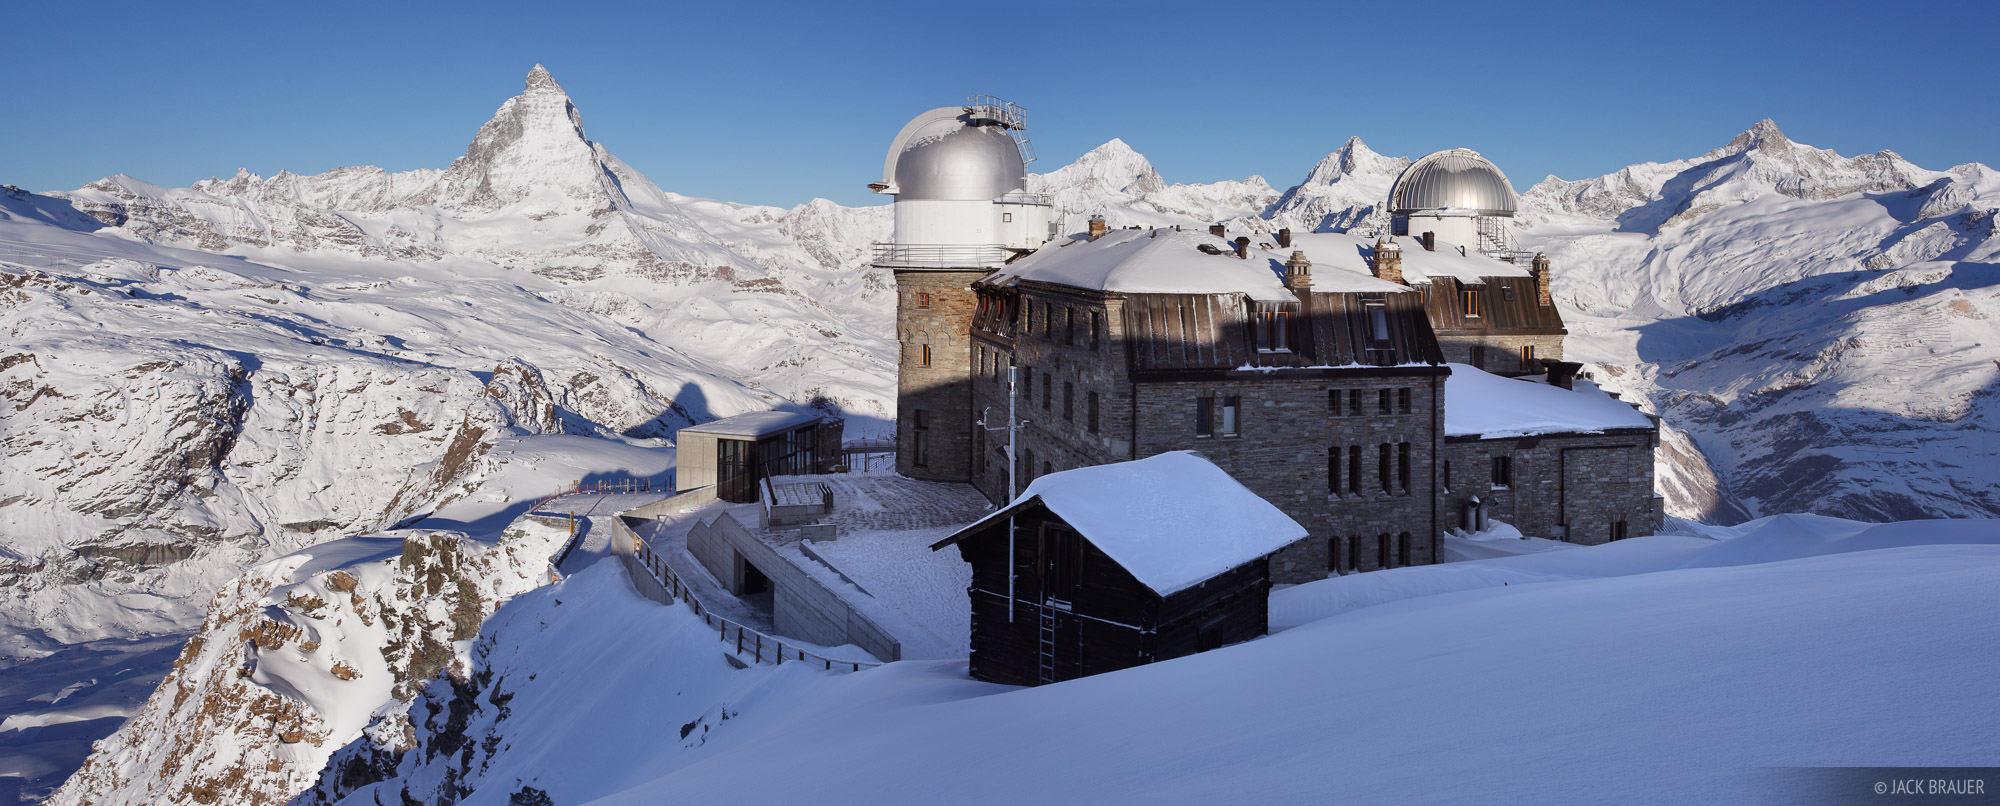 Gornergrat, Matterhorn, Pennine Alps, Zermatt, Switzerland, photo